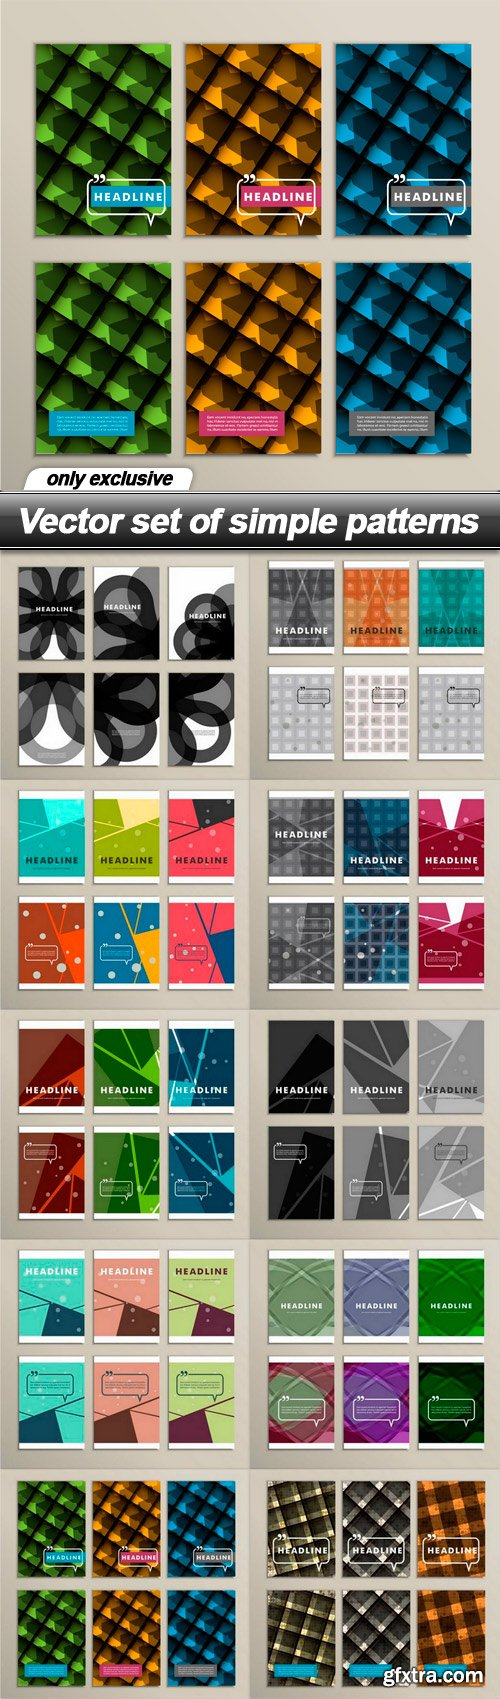 Vector set of simple patterns - 10 EPS